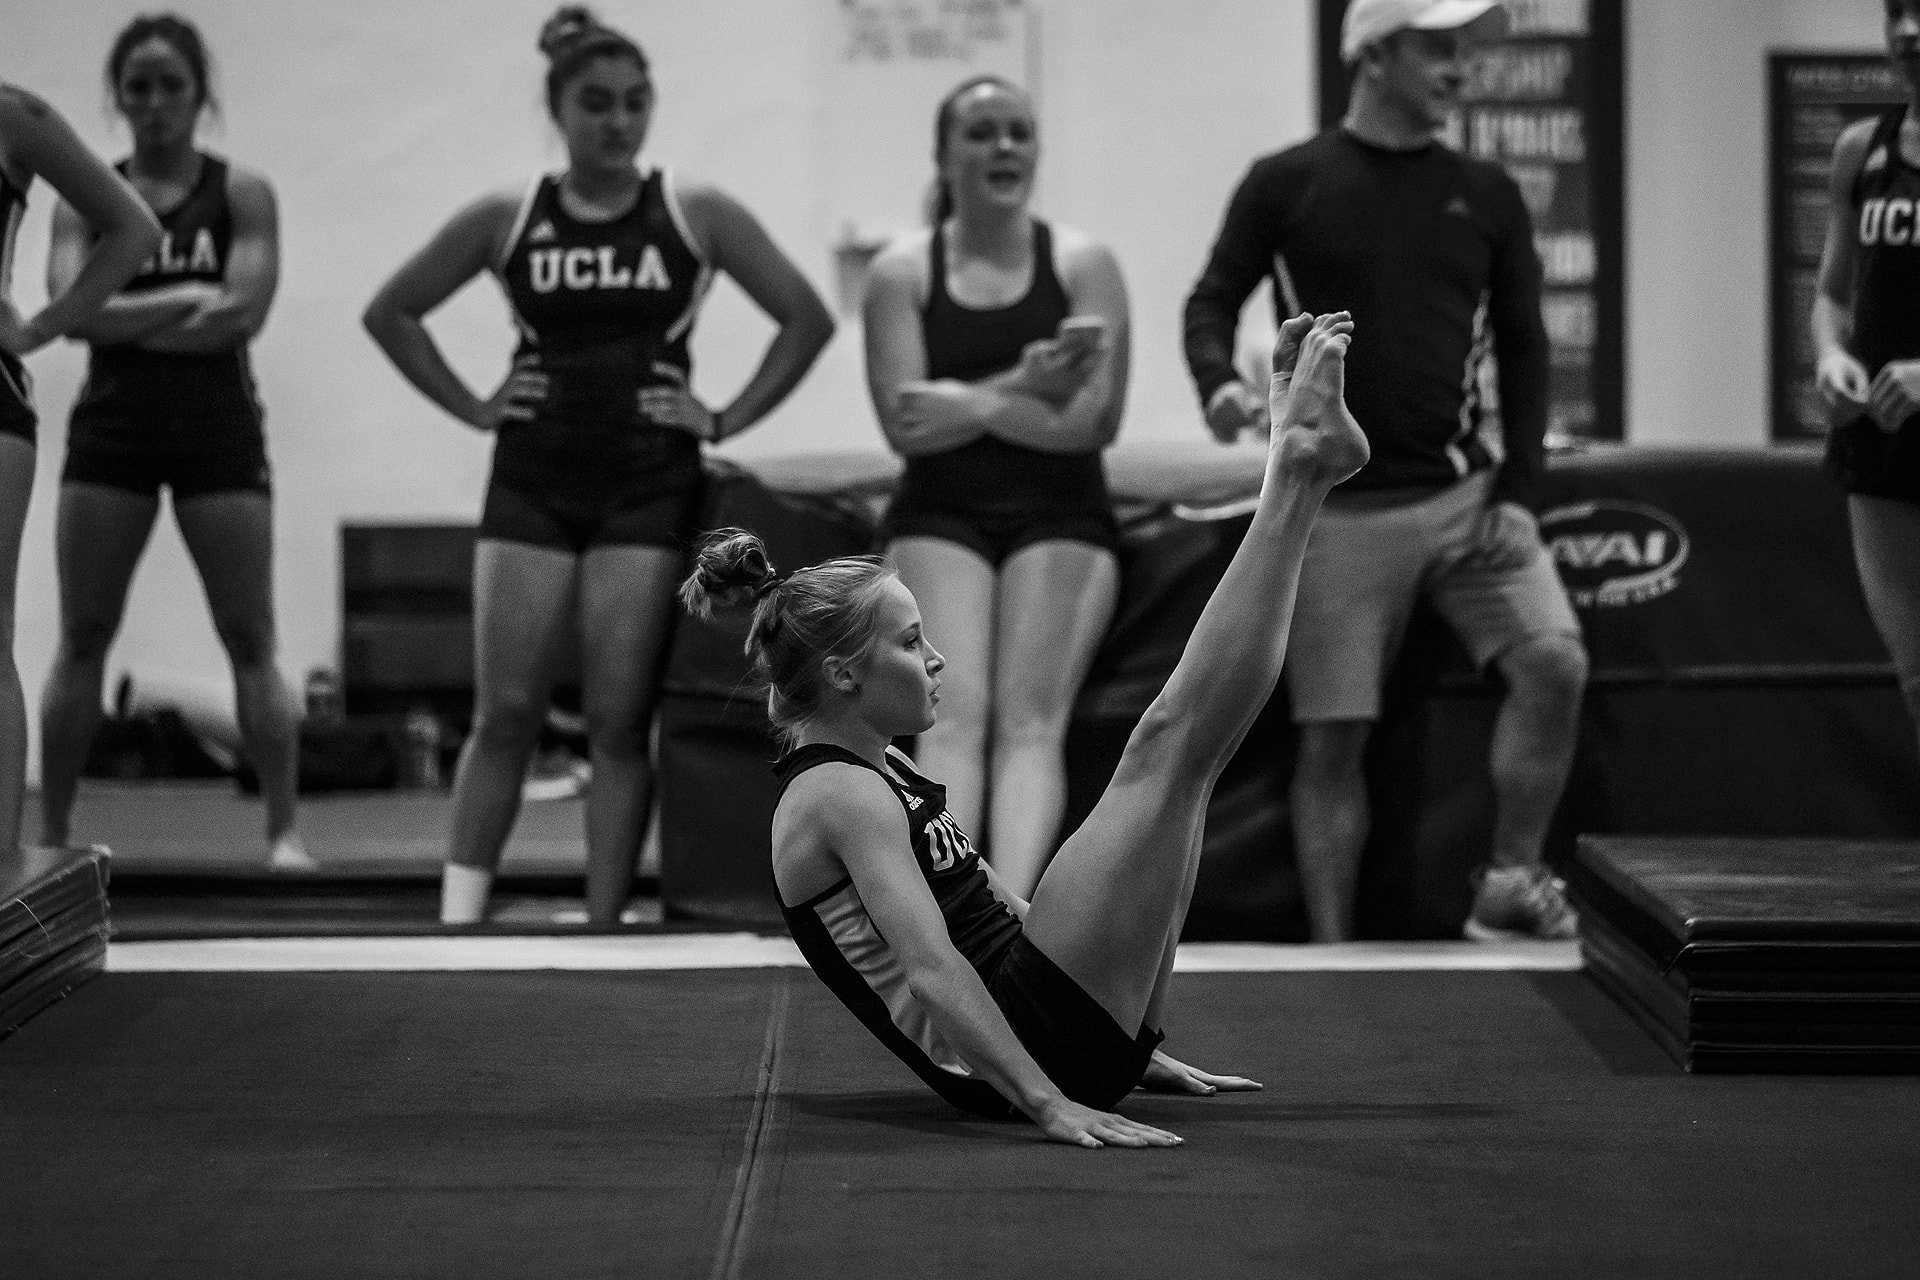 Olympic Gold medalists Madison Kocian and Kyla Ross on campus at UCLA on October 21, 2016 in Los Angeles, California. (Photo by Carlos Gonzalez/The Players' Tribune)